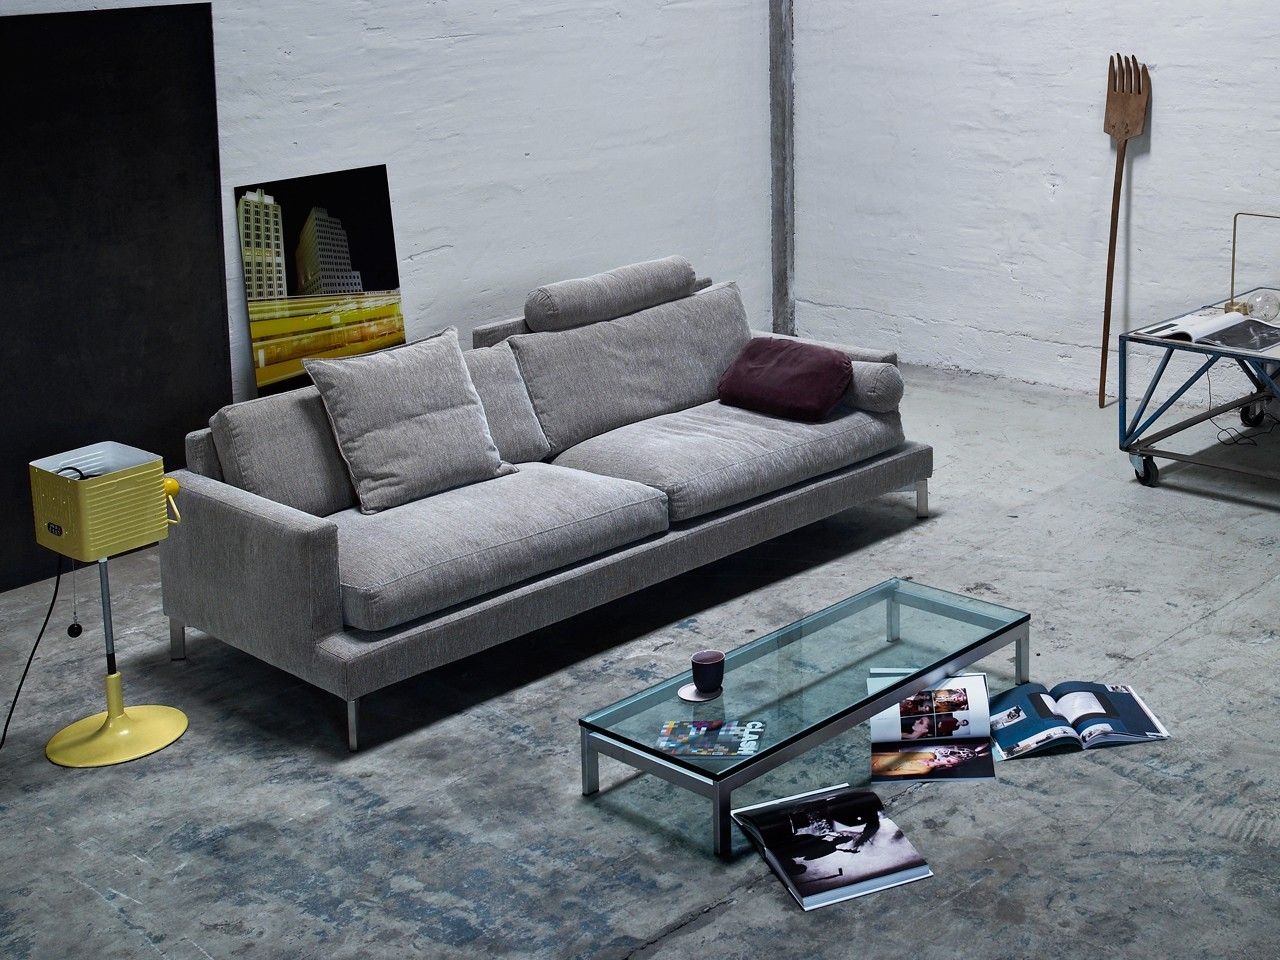 good quality living room furniture%0A Great Lift Sofa by Eilersen  Denmark  furniture  modernfurniture  livingroom   sofa